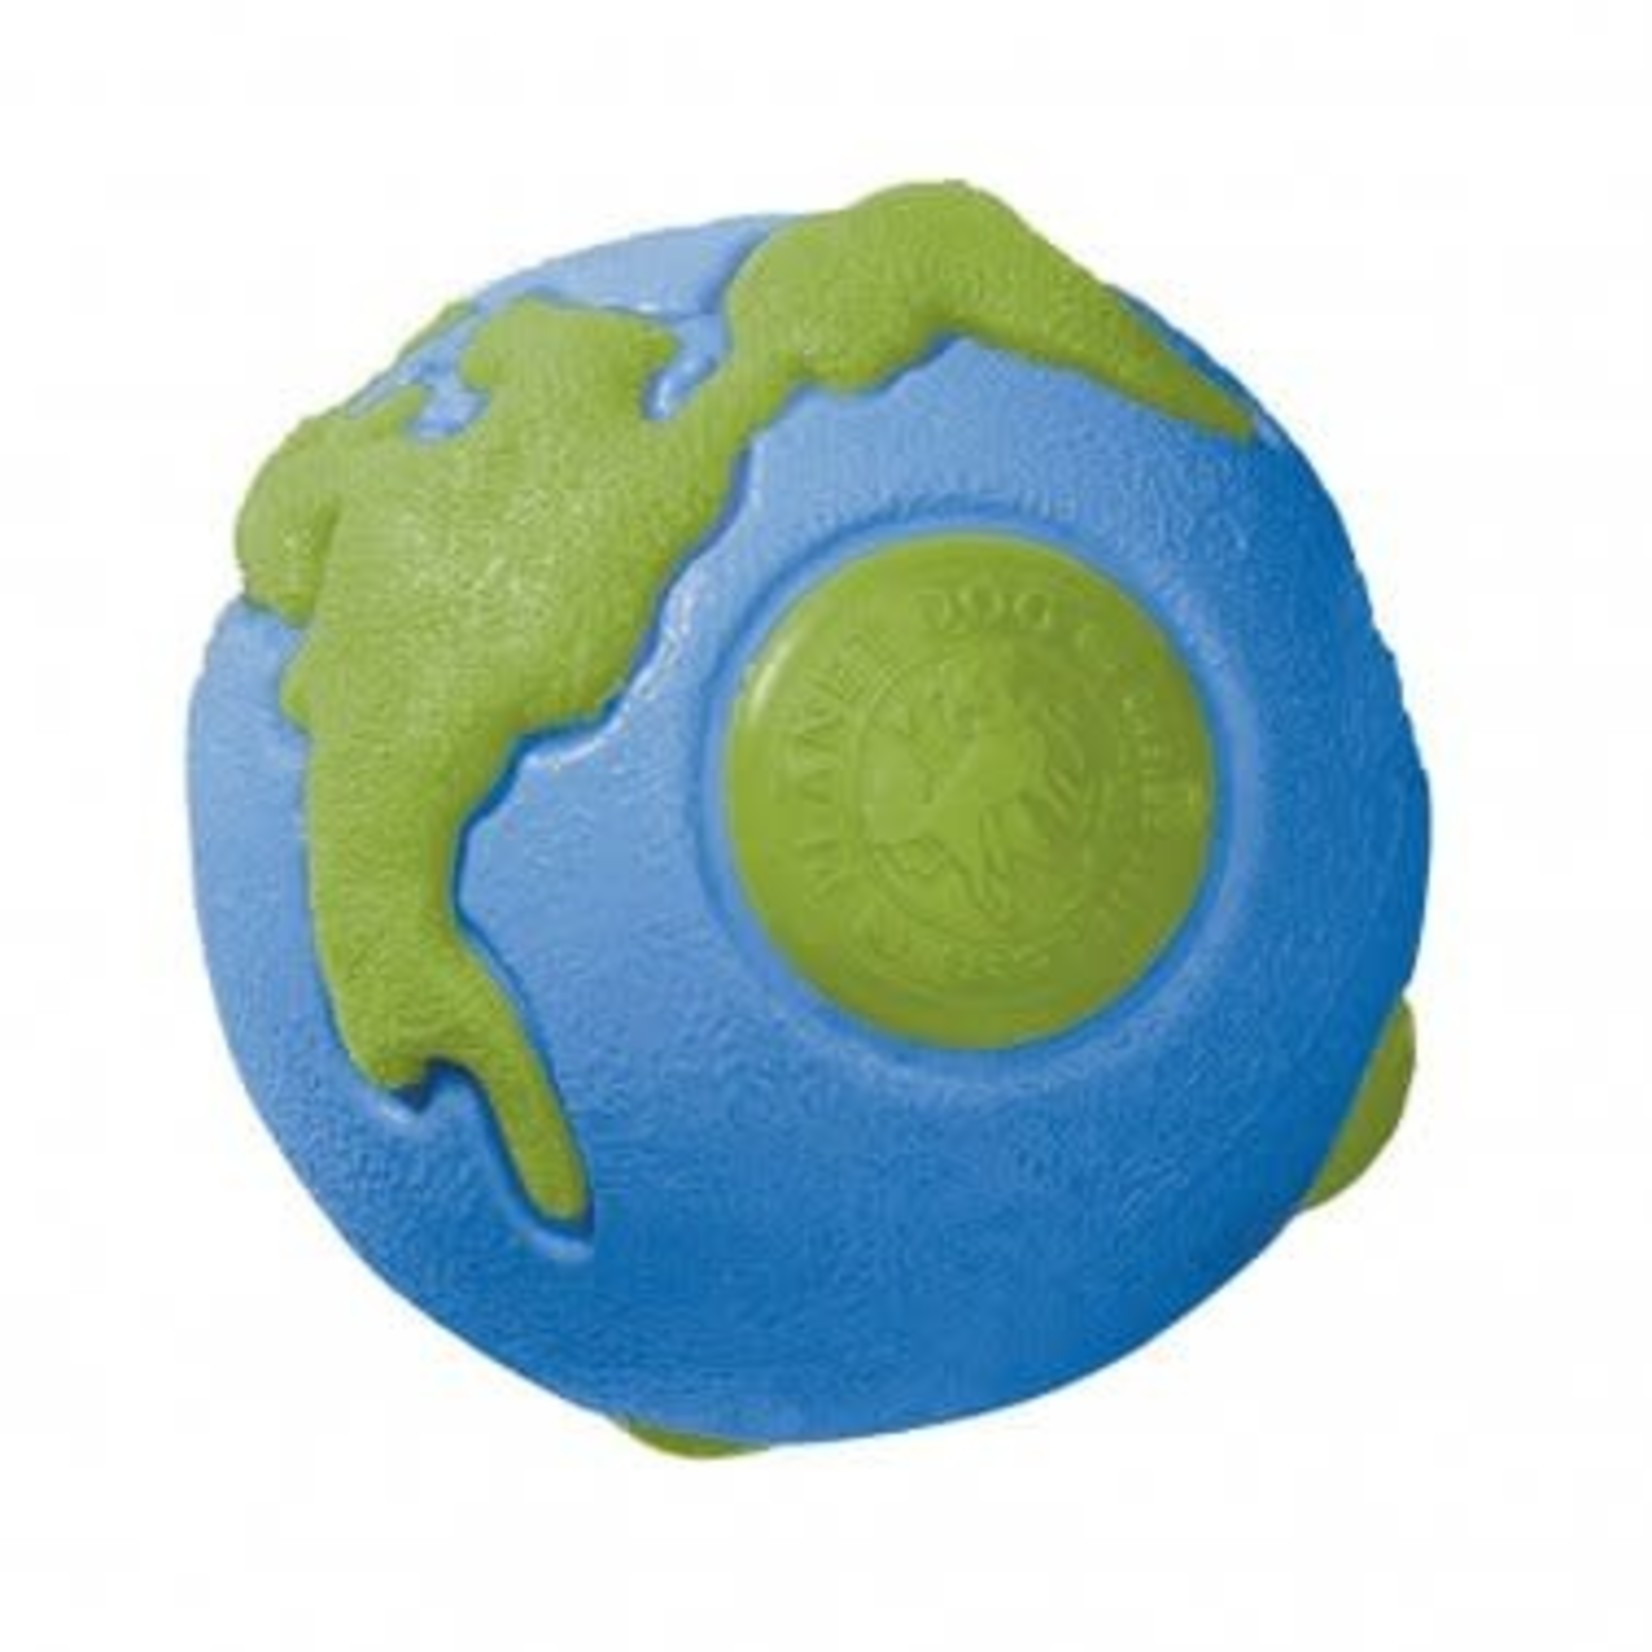 Planet Dog Planet Dog Orbee Ball Blue/Green Small